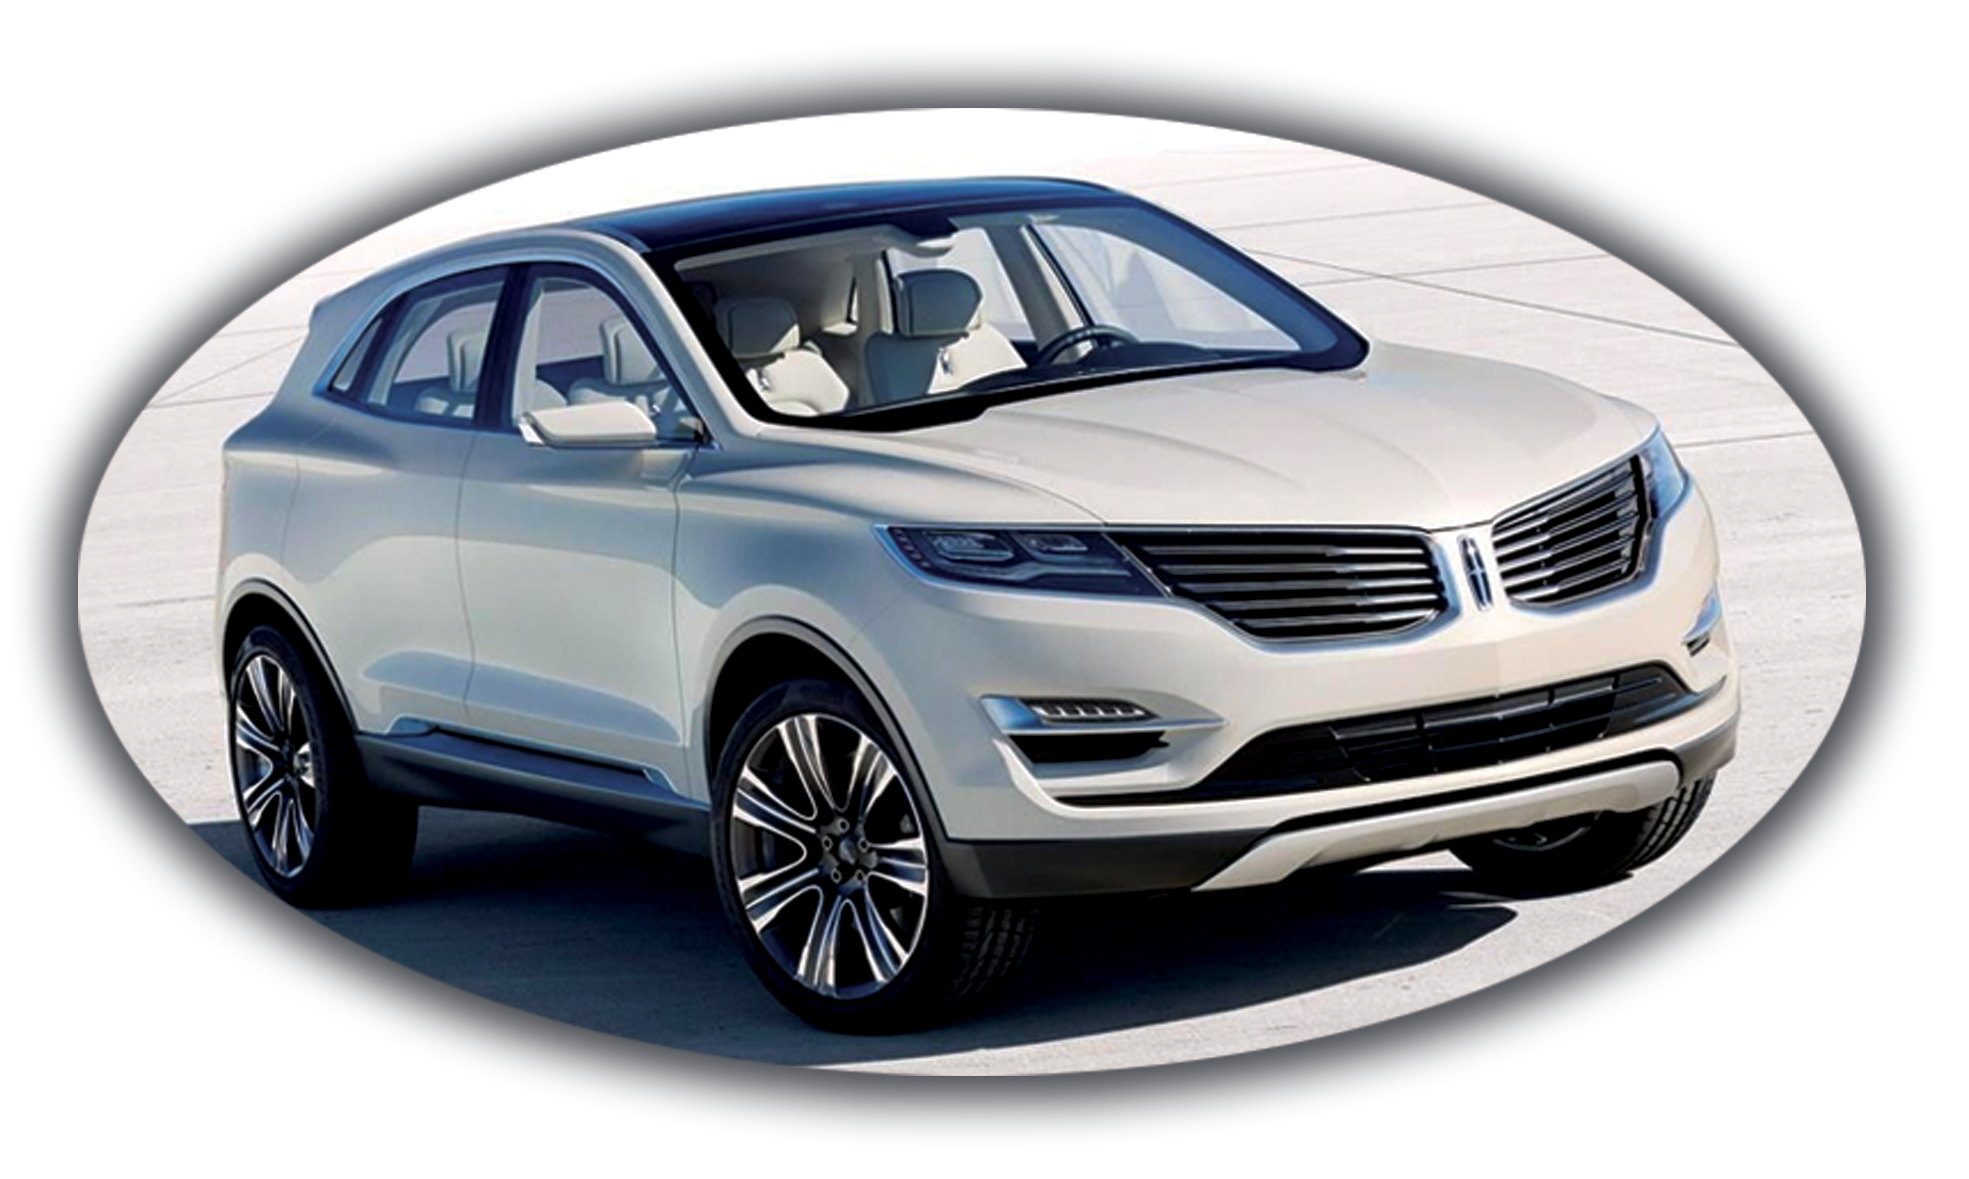 large iced sedan lease label premiere groovecar black lincoln research mocha composite mkz